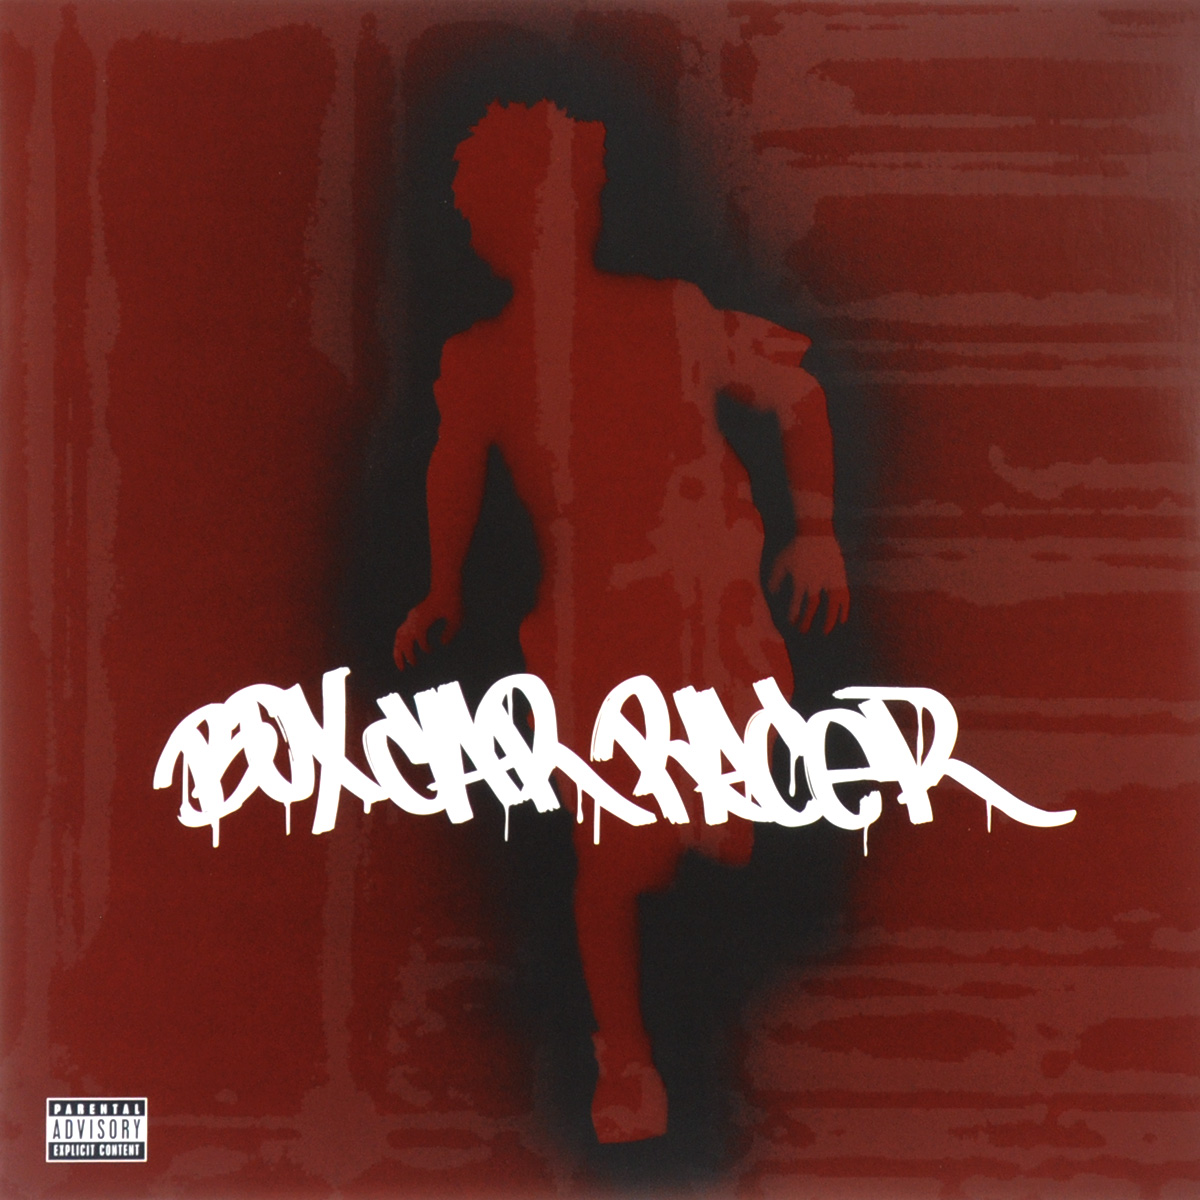 Box Car Racer Racer. (LP)